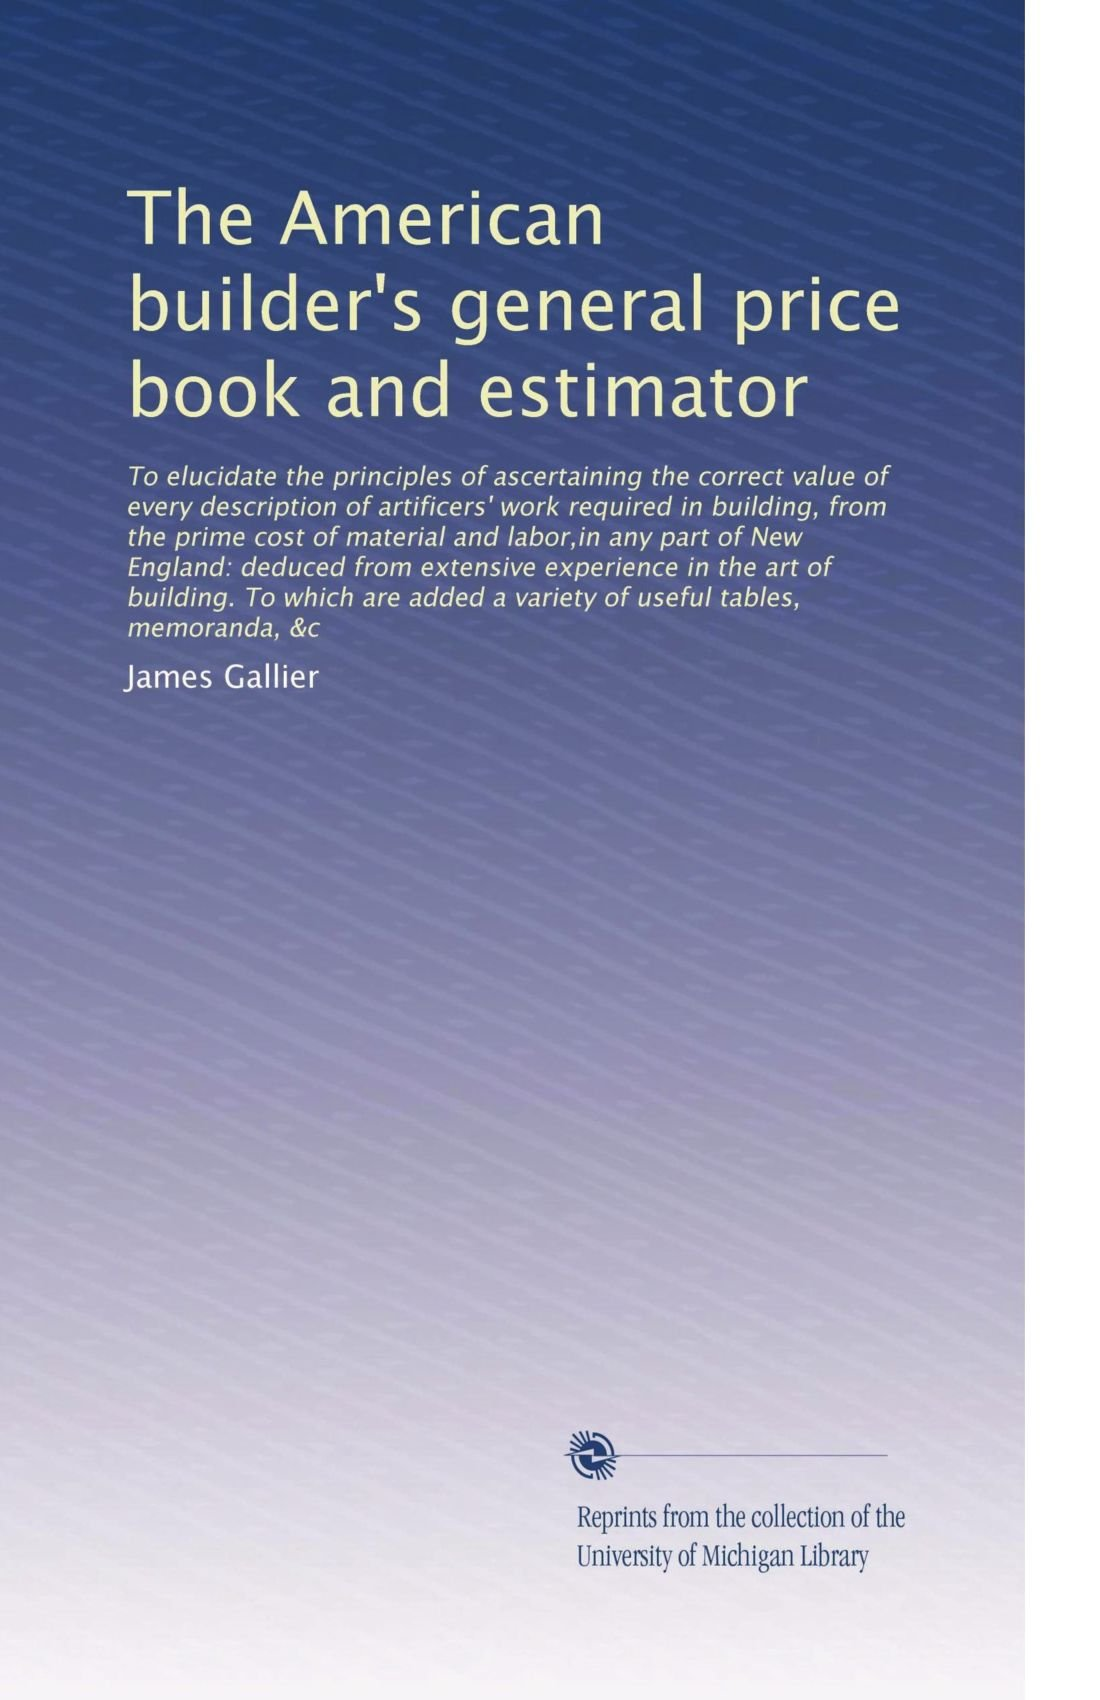 The American builder's general price book and estimator: To elucidate the principles of ascertaining t... pdf